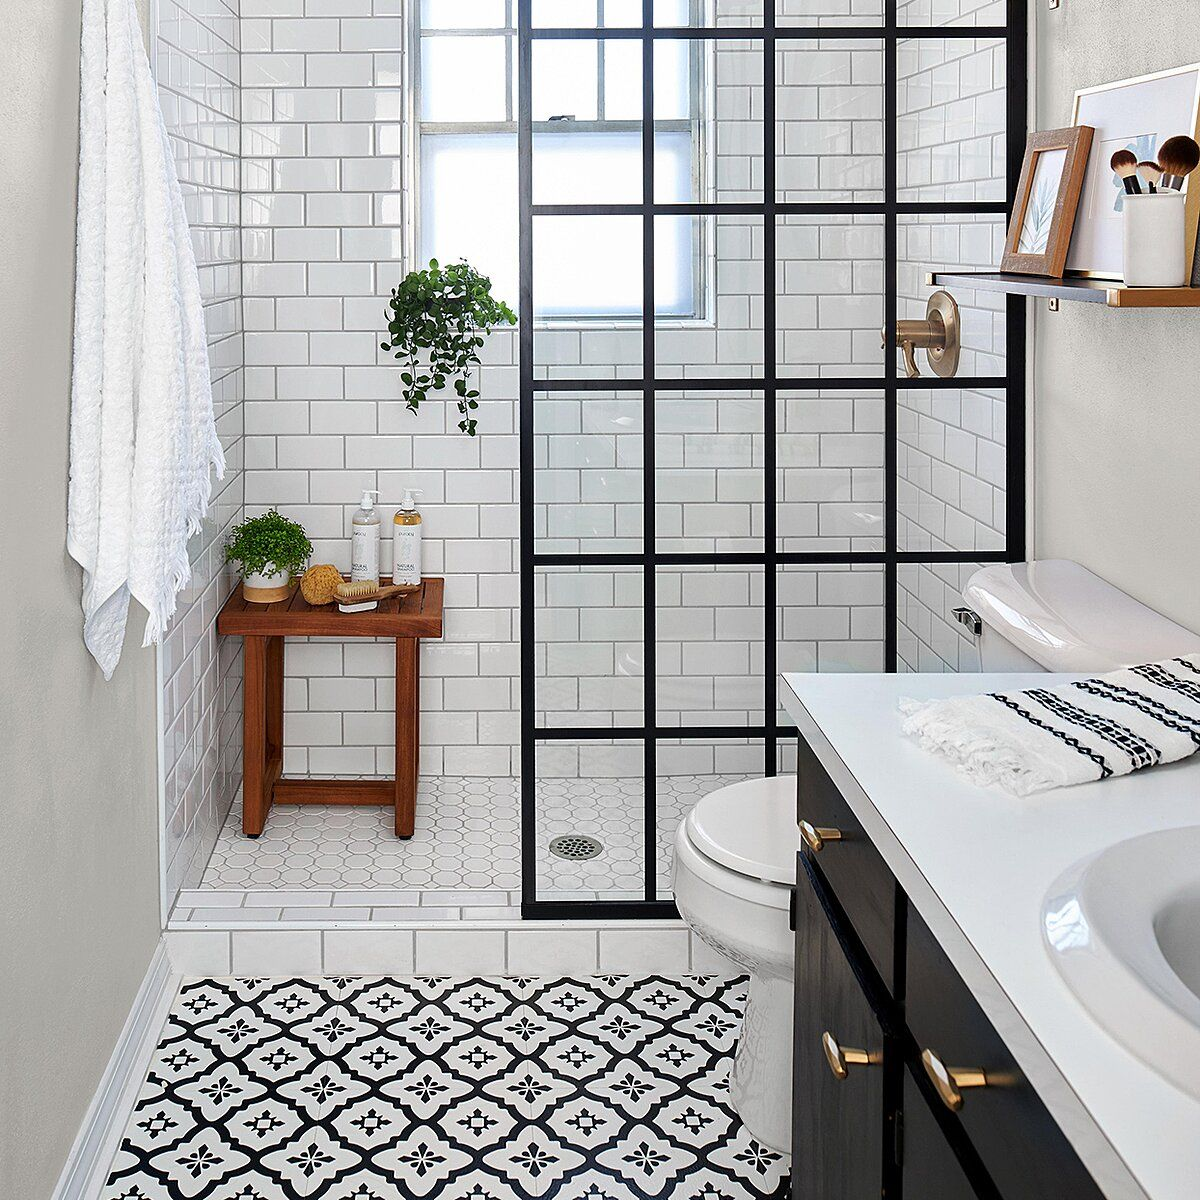 You Won T Believe How Little This Bath Remodel Cost In 2020 Bathroom Interior Design Small Bathroom Makeover Diy Bathroom Remodel